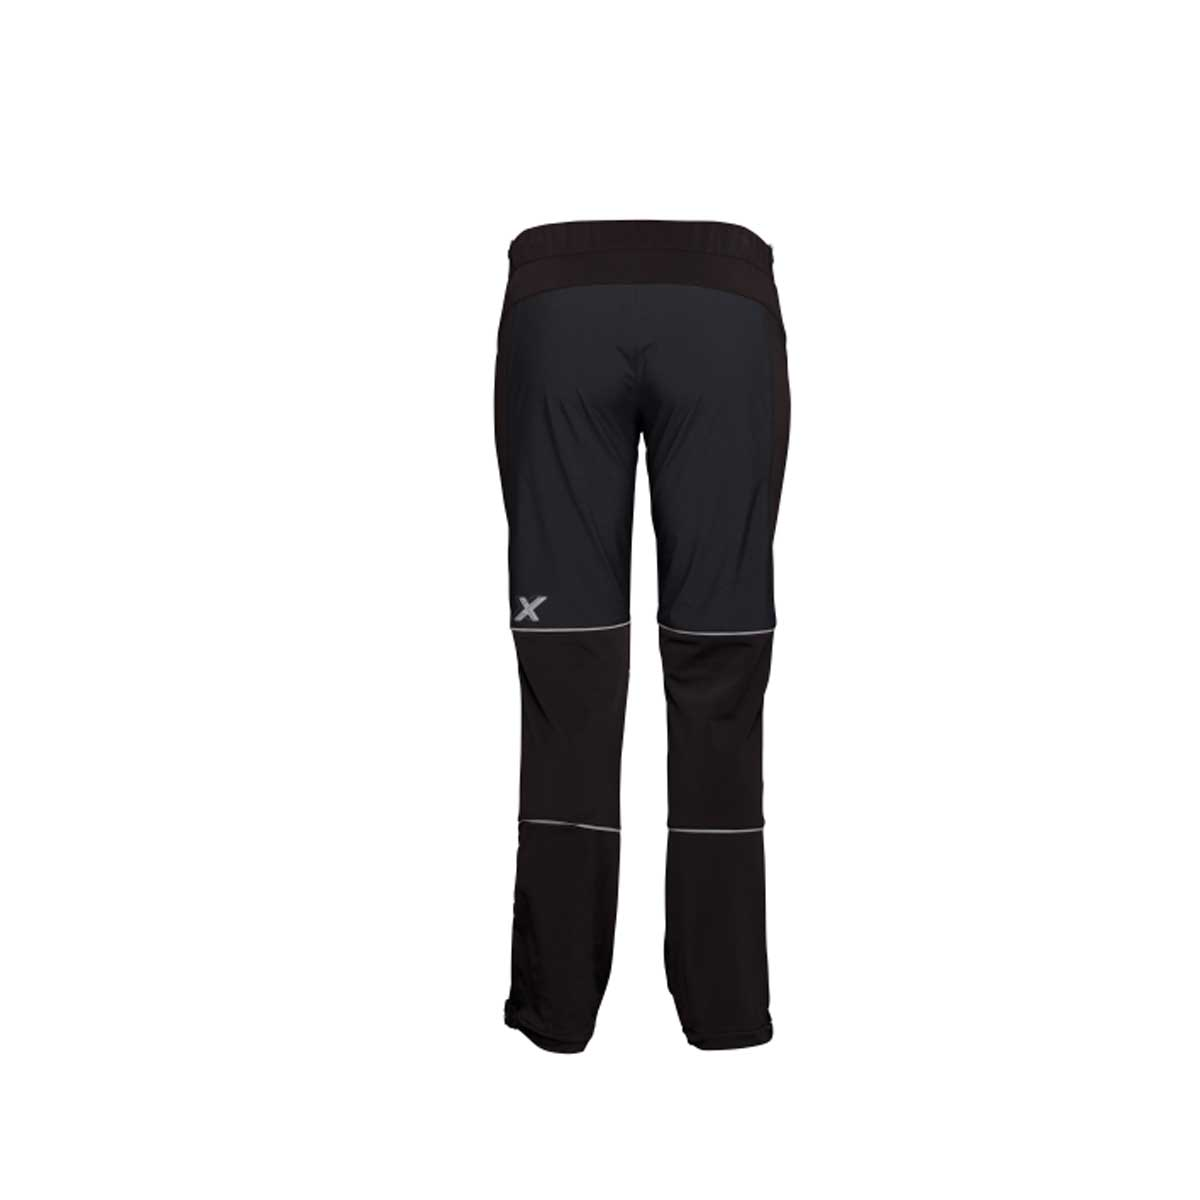 Swix Women's Bekke Tech Pant in Black